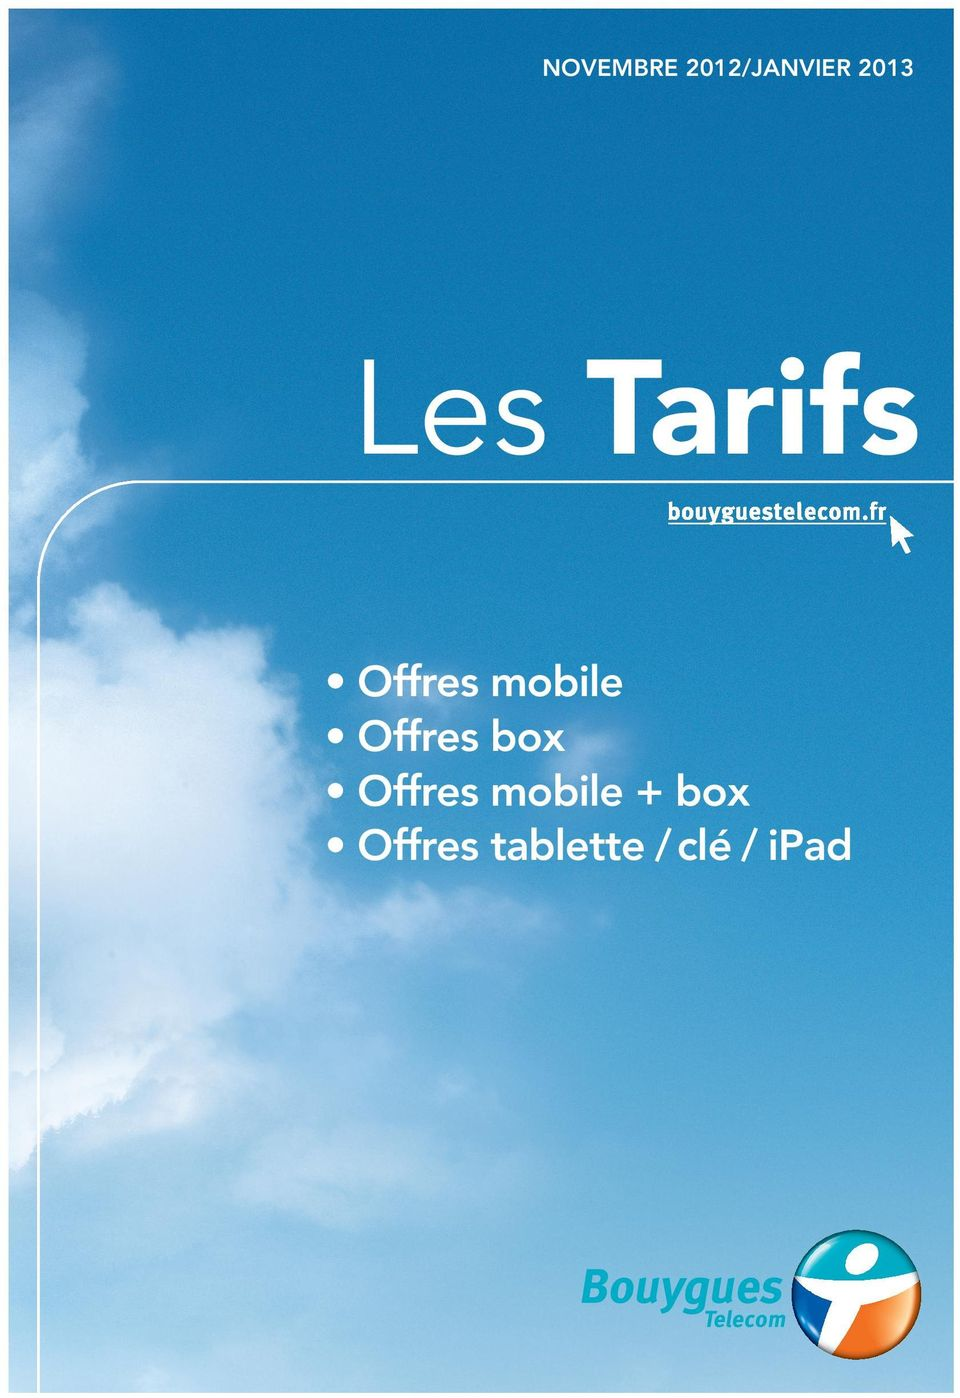 Tarifs Offres mobile Offres box